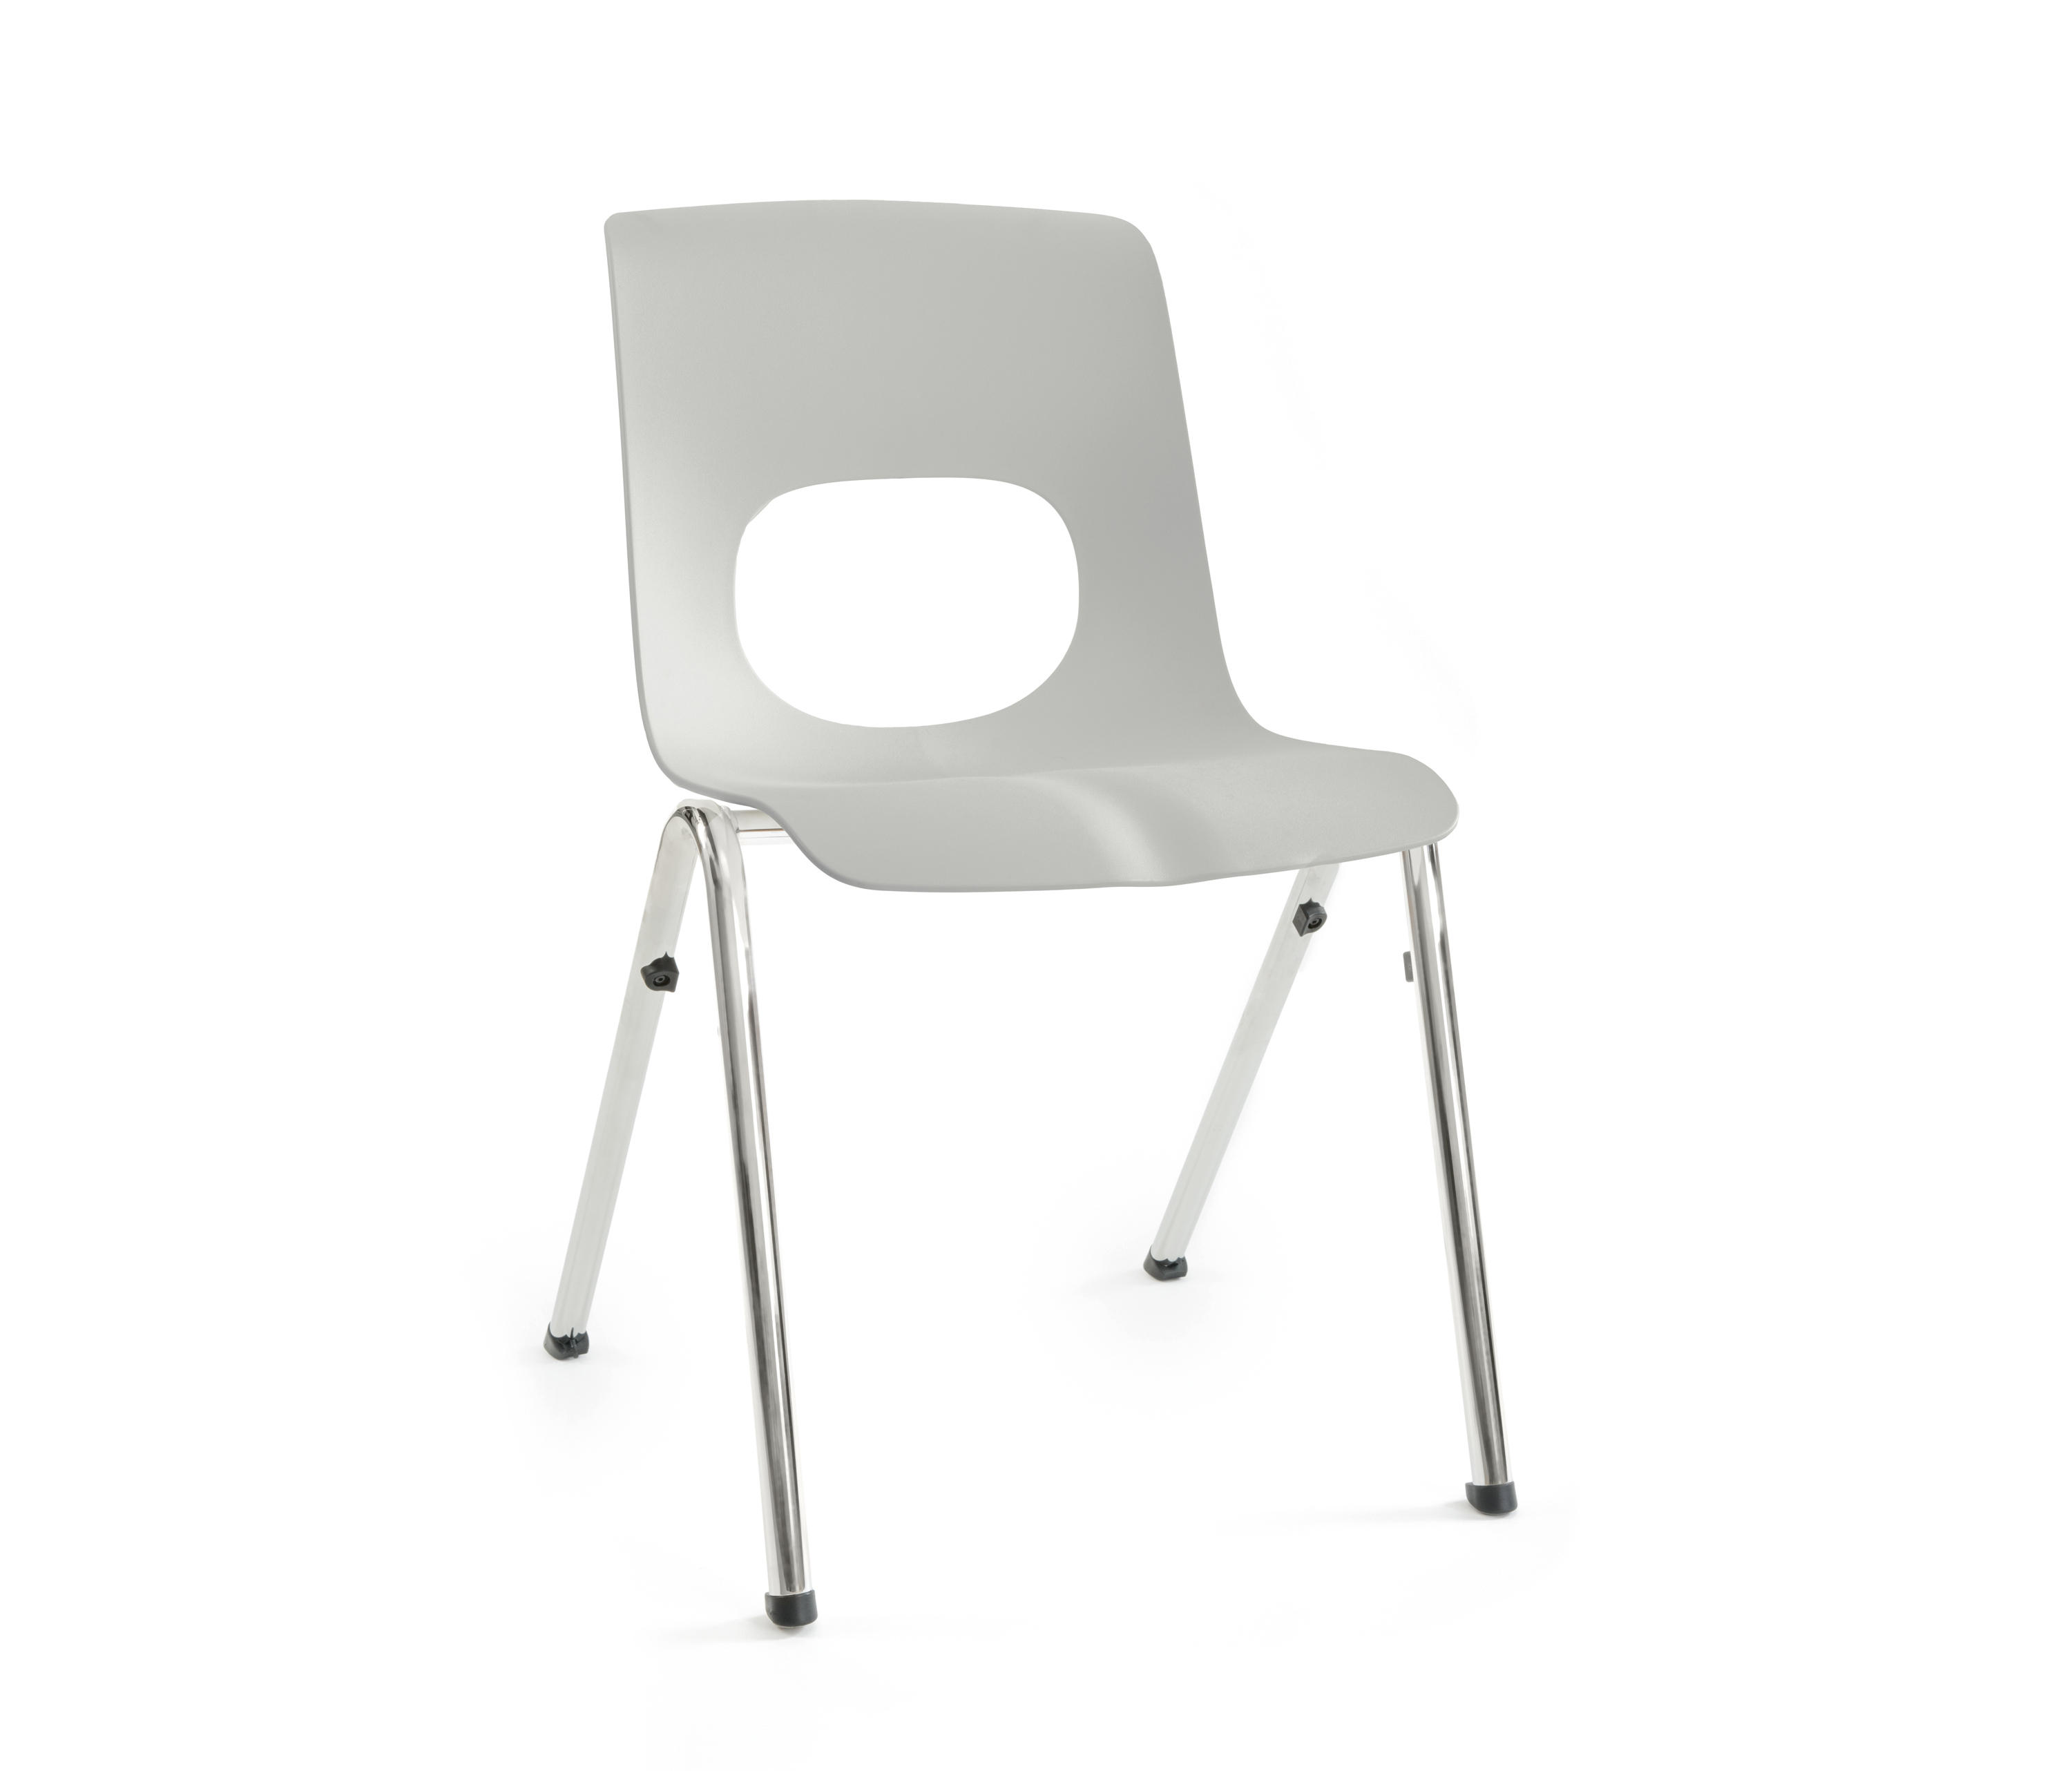 Nf Compass Chairs From Vs Architonic